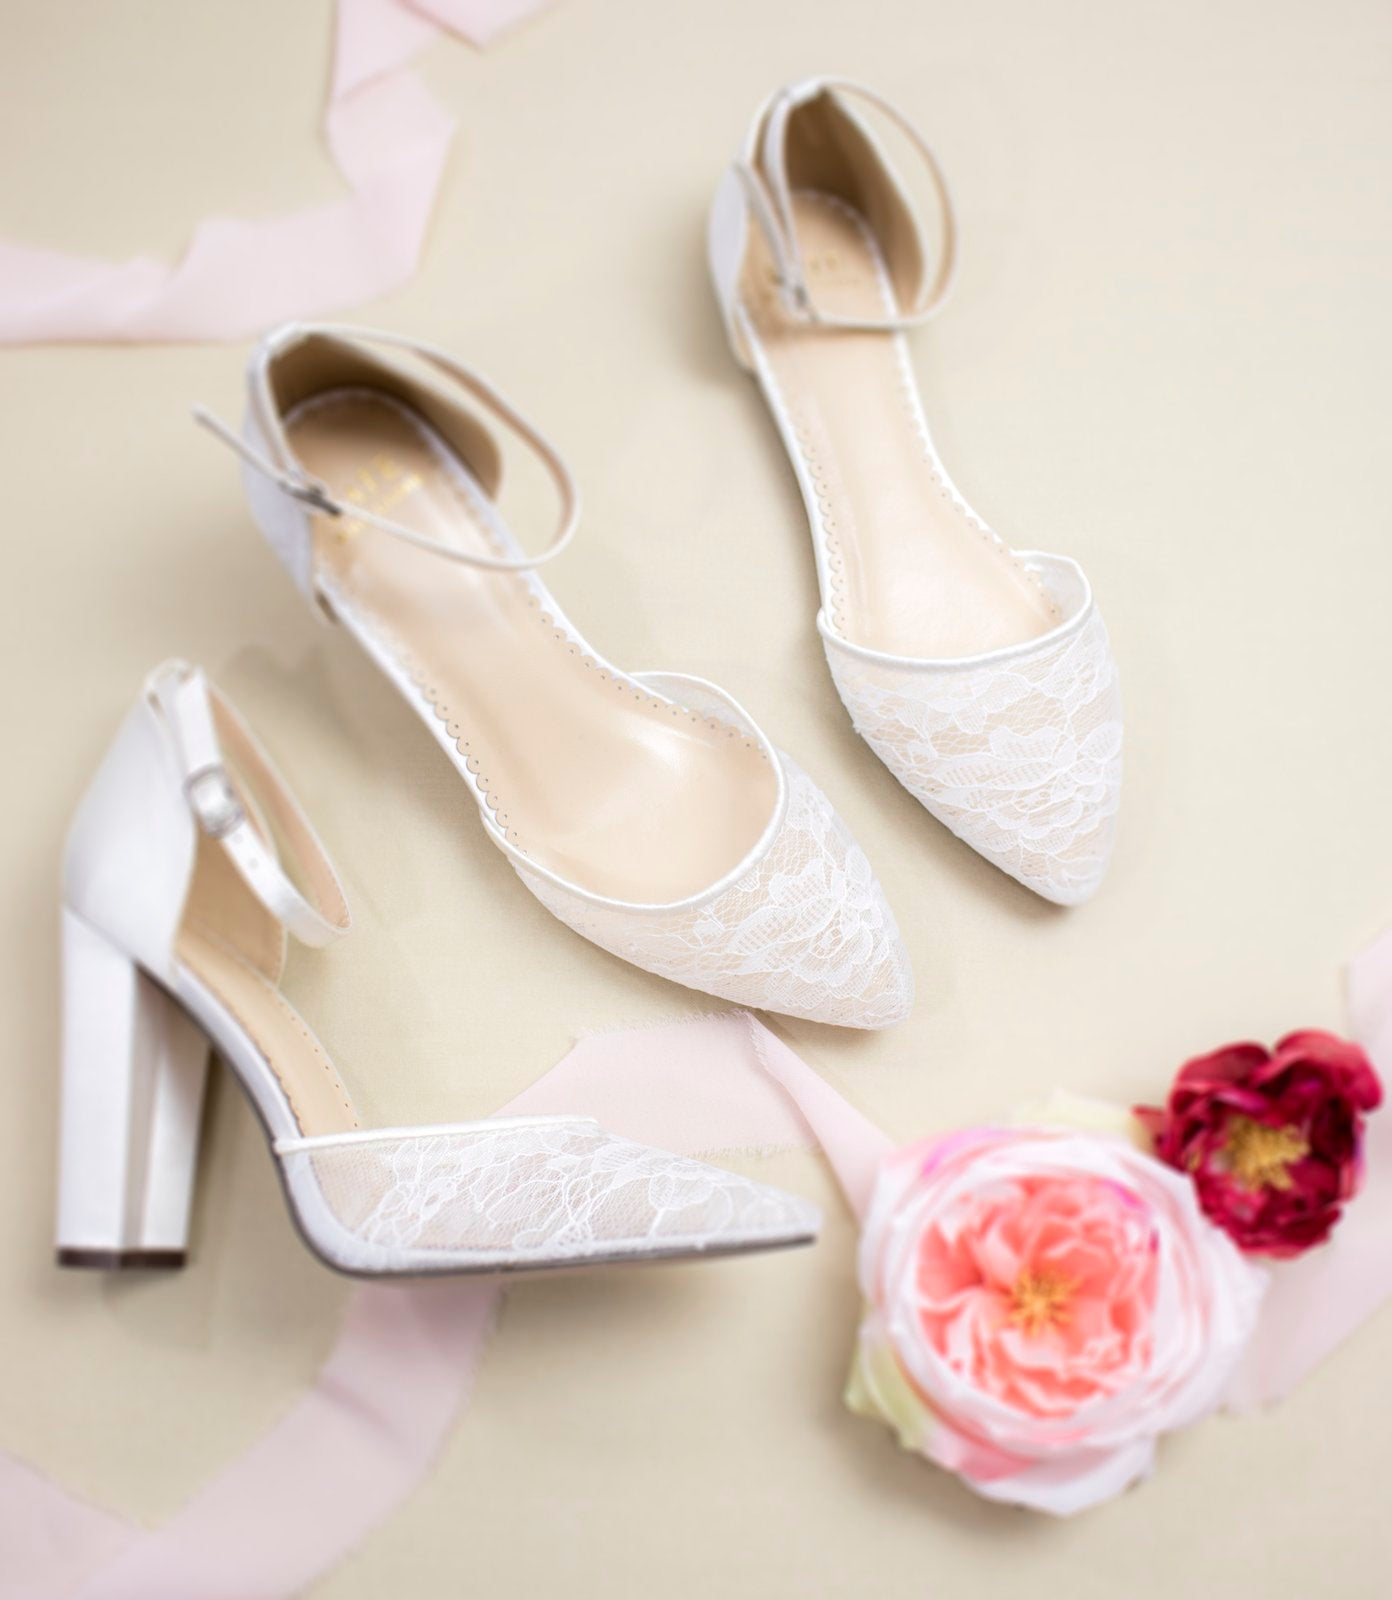 lace wedding shoes, lace flats, lace shoes for bride, kate whitcomb